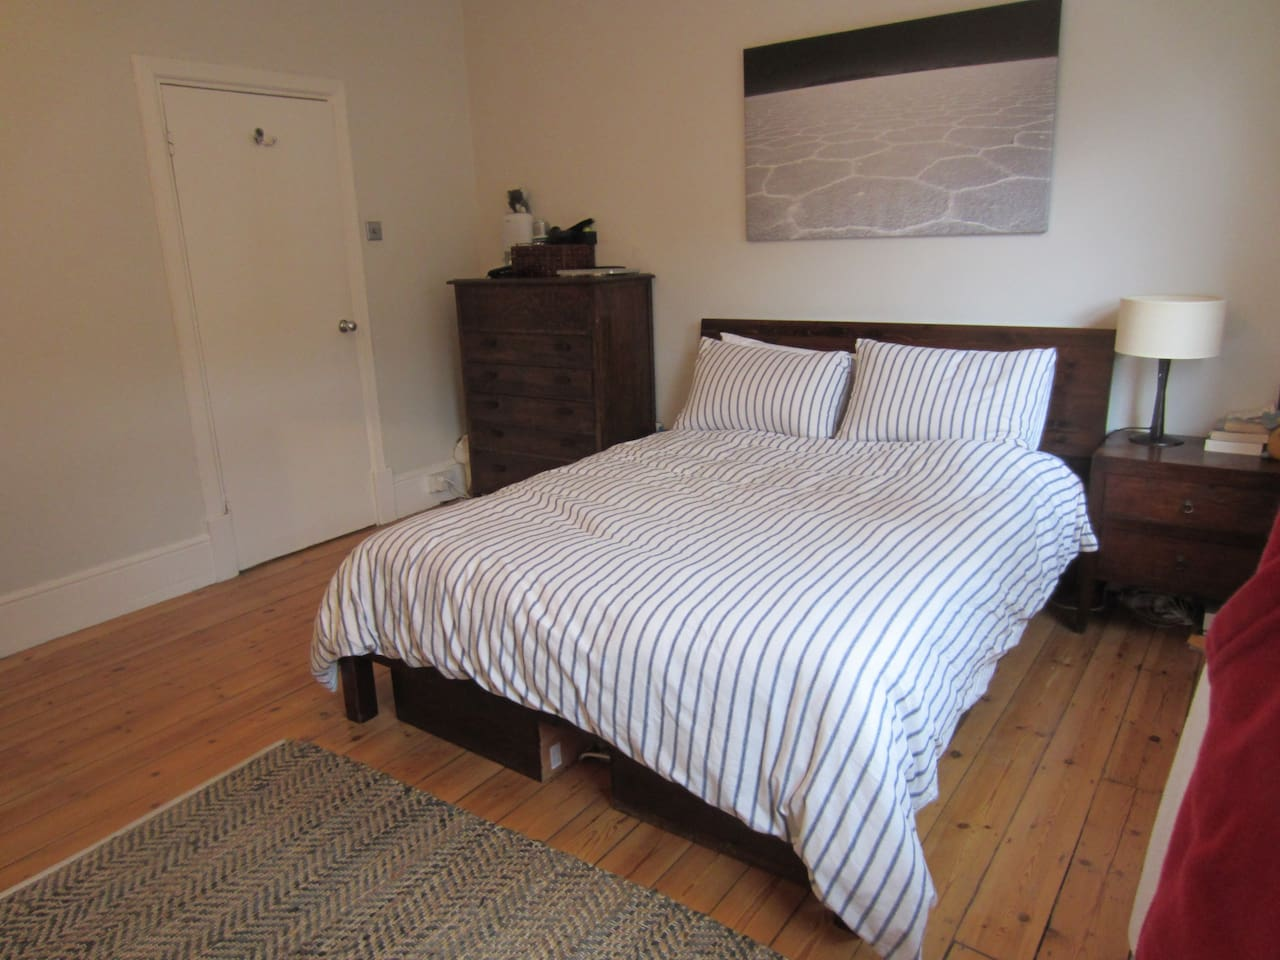 The Master Bedroom - Large, Bright and Quiet with a High Quality King Sized Bed